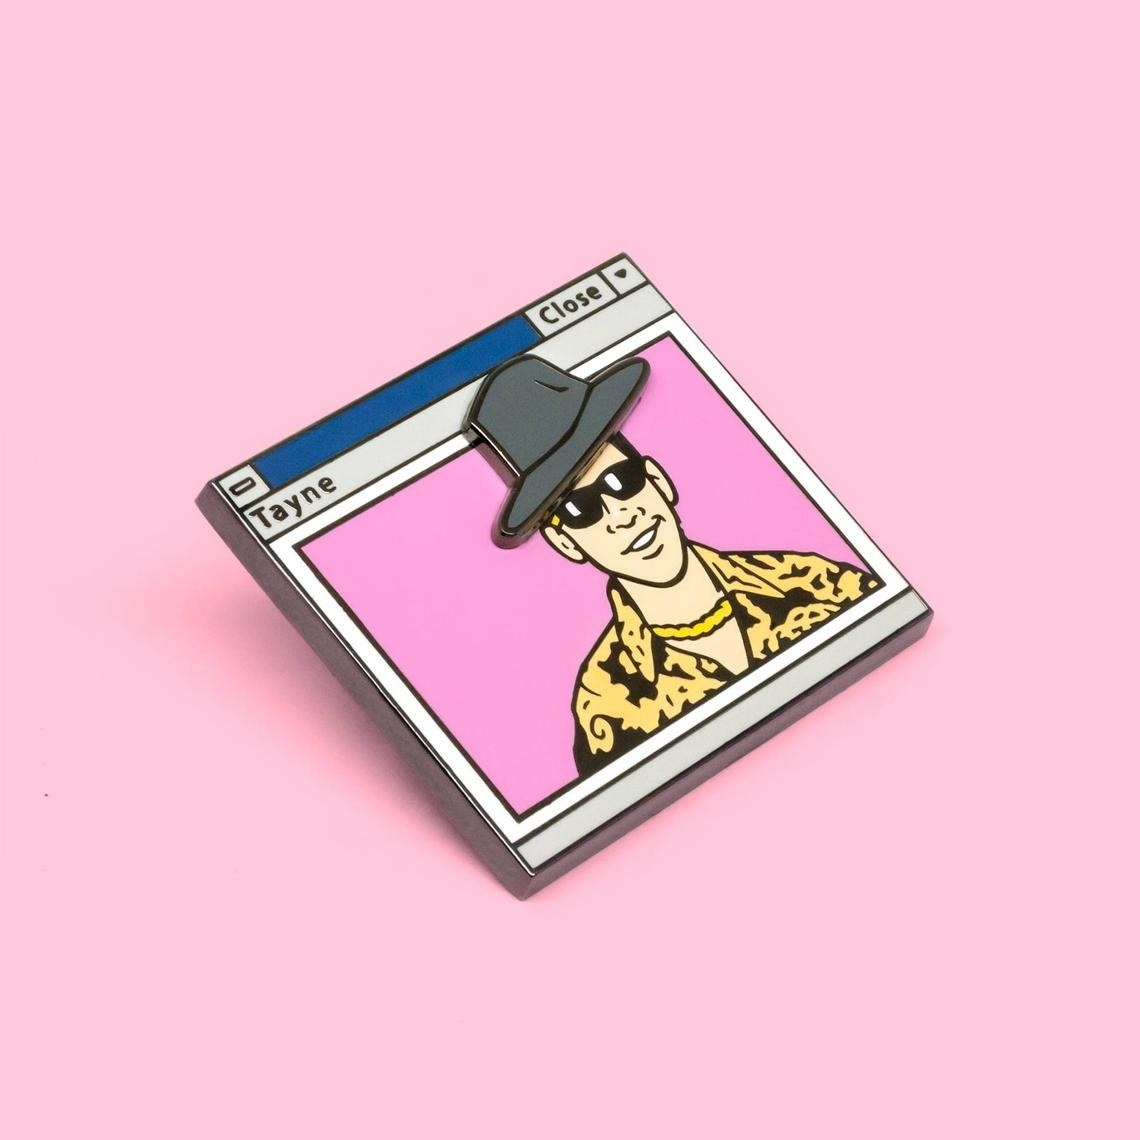 pin that looks like computer window with paul rudd in it wearing a flashy shirt, gold chain, sunglasses, and another layer that's a hat that moves